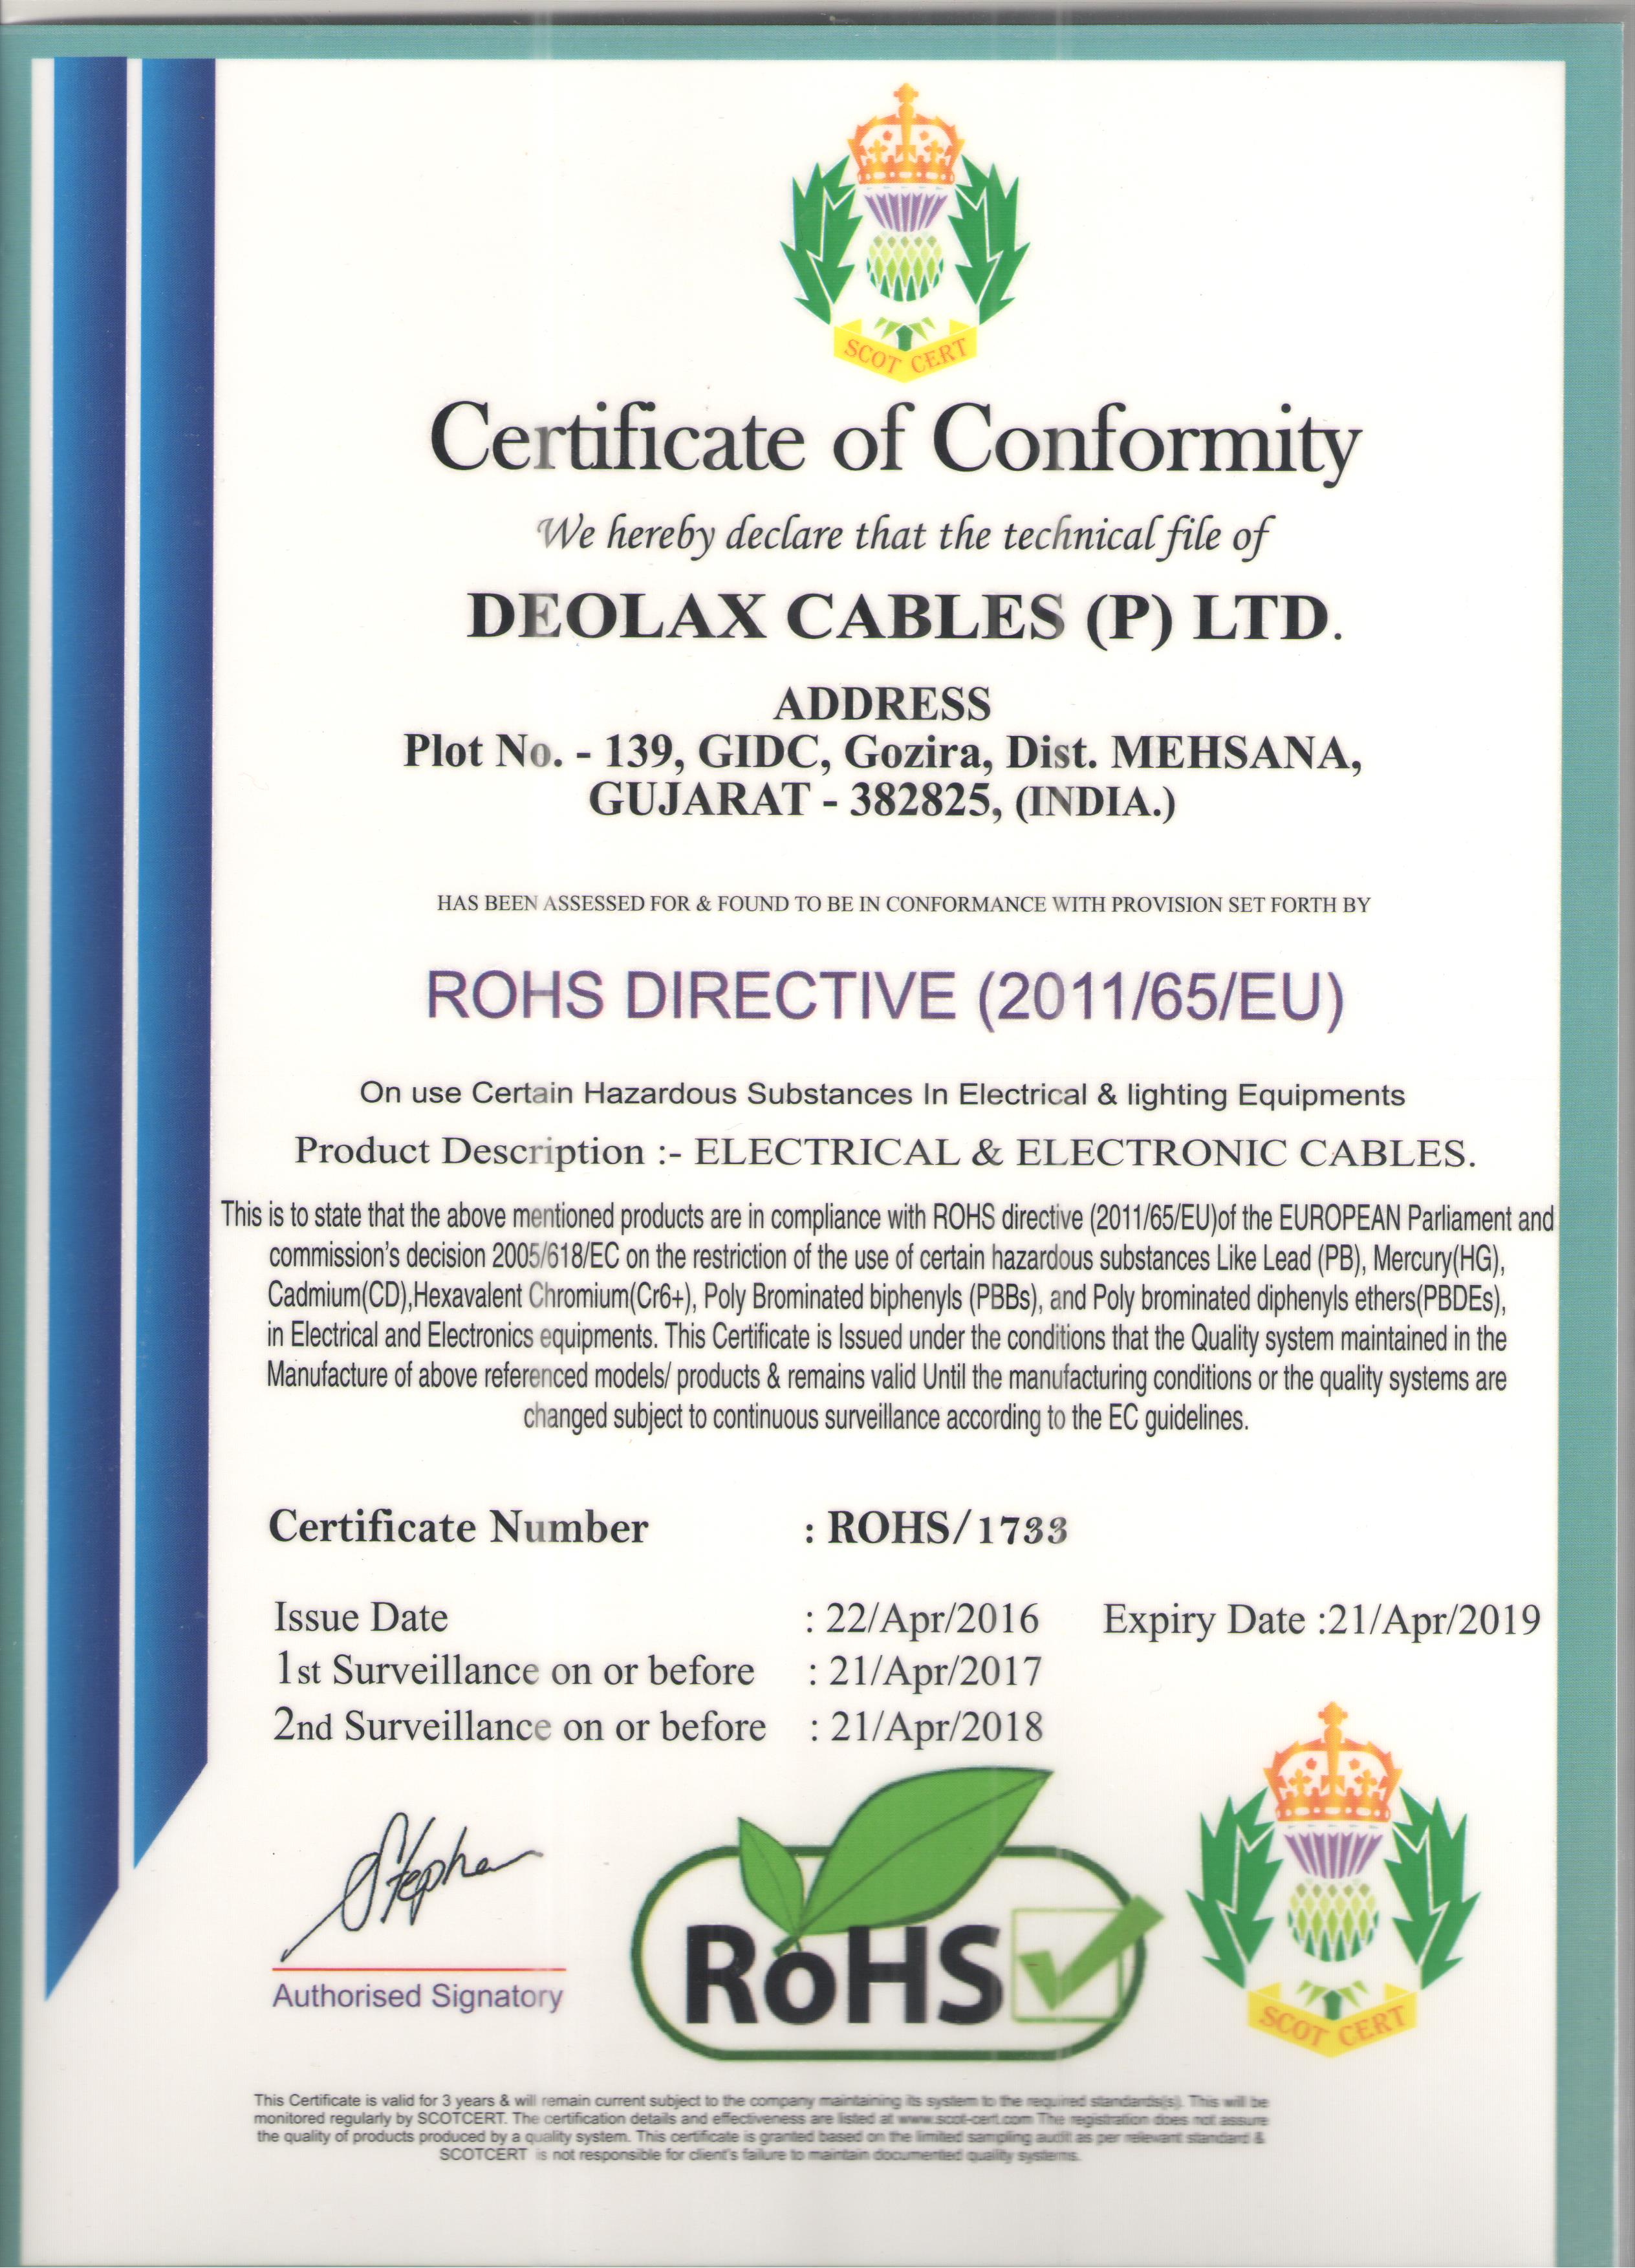 Welcome to Deolax Cables Private Limited